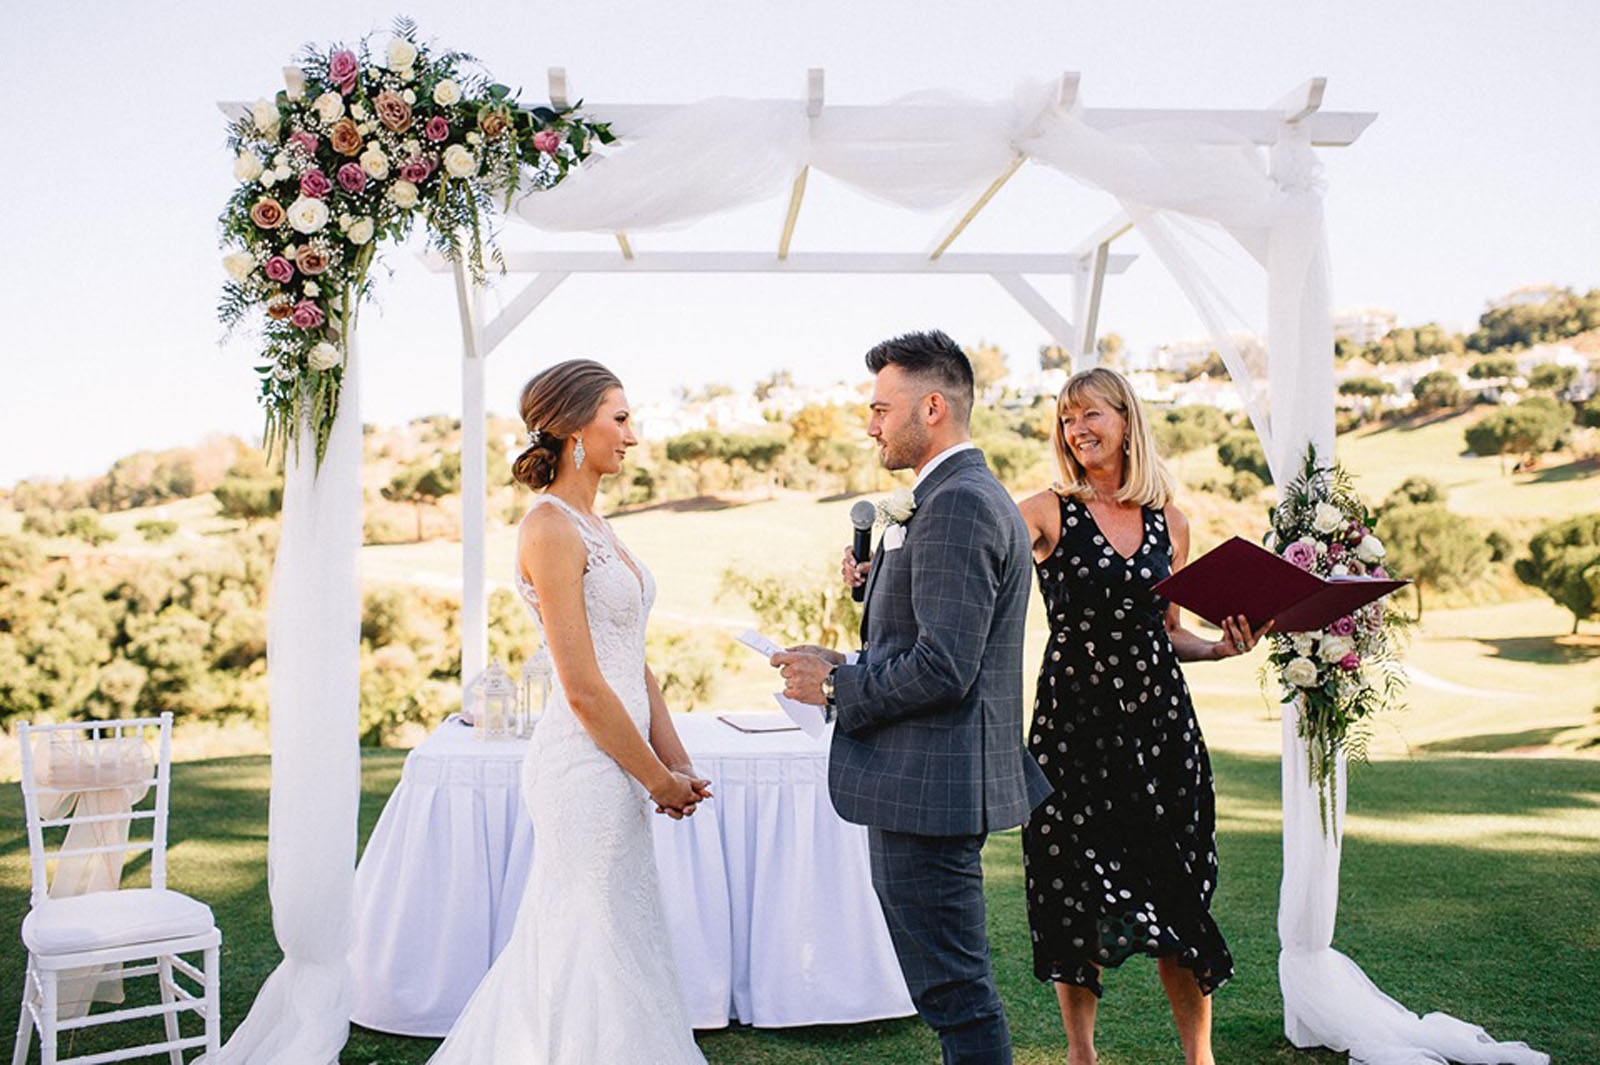 Tips to organize your wedding